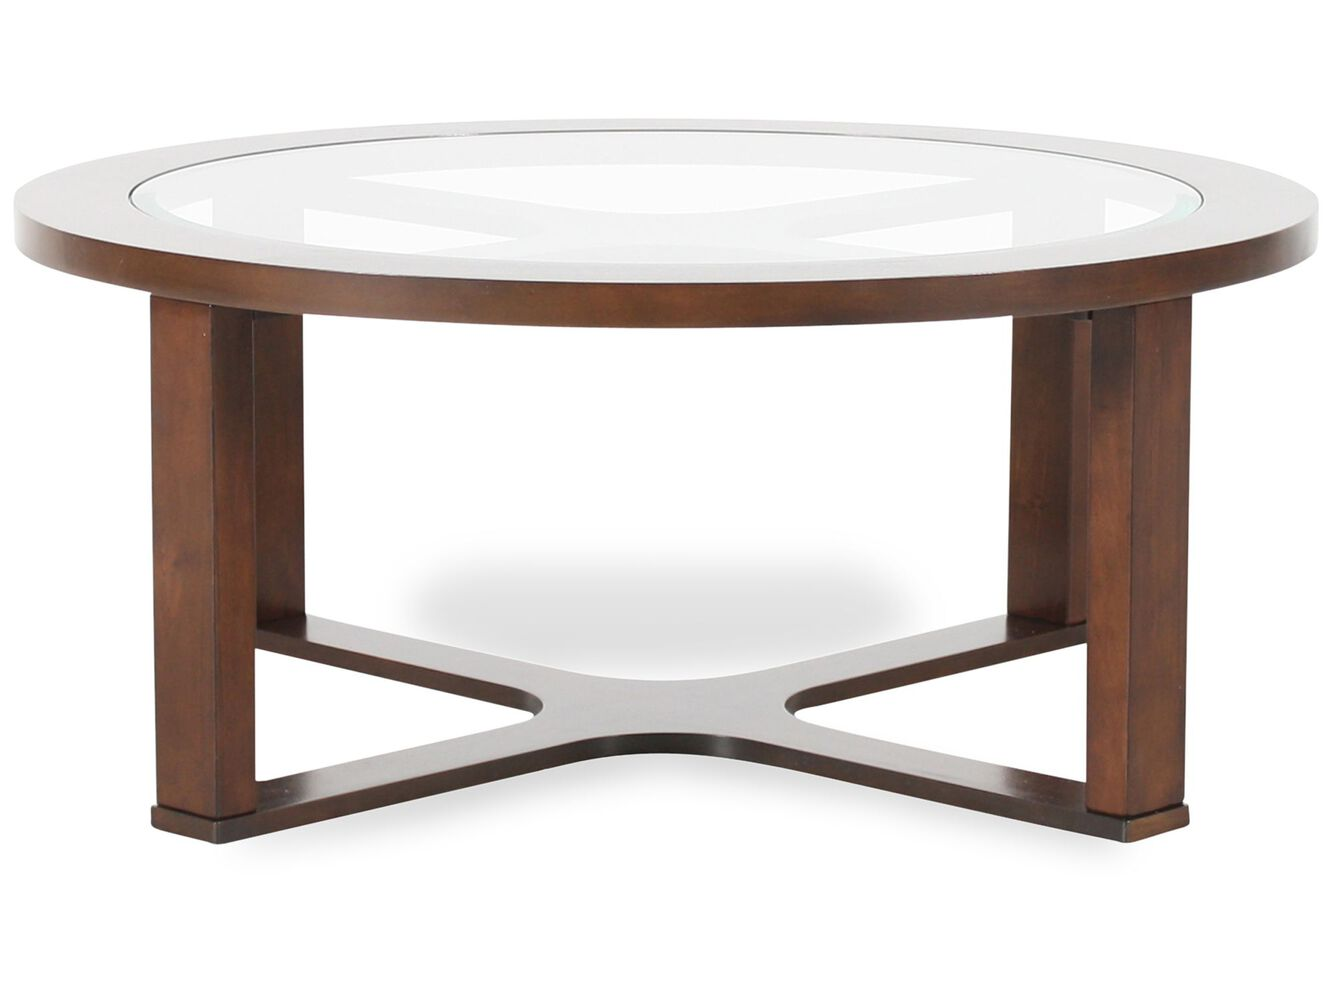 Round cocktail tables pedestal bar table 17 24 inch for Round cocktail table with stools